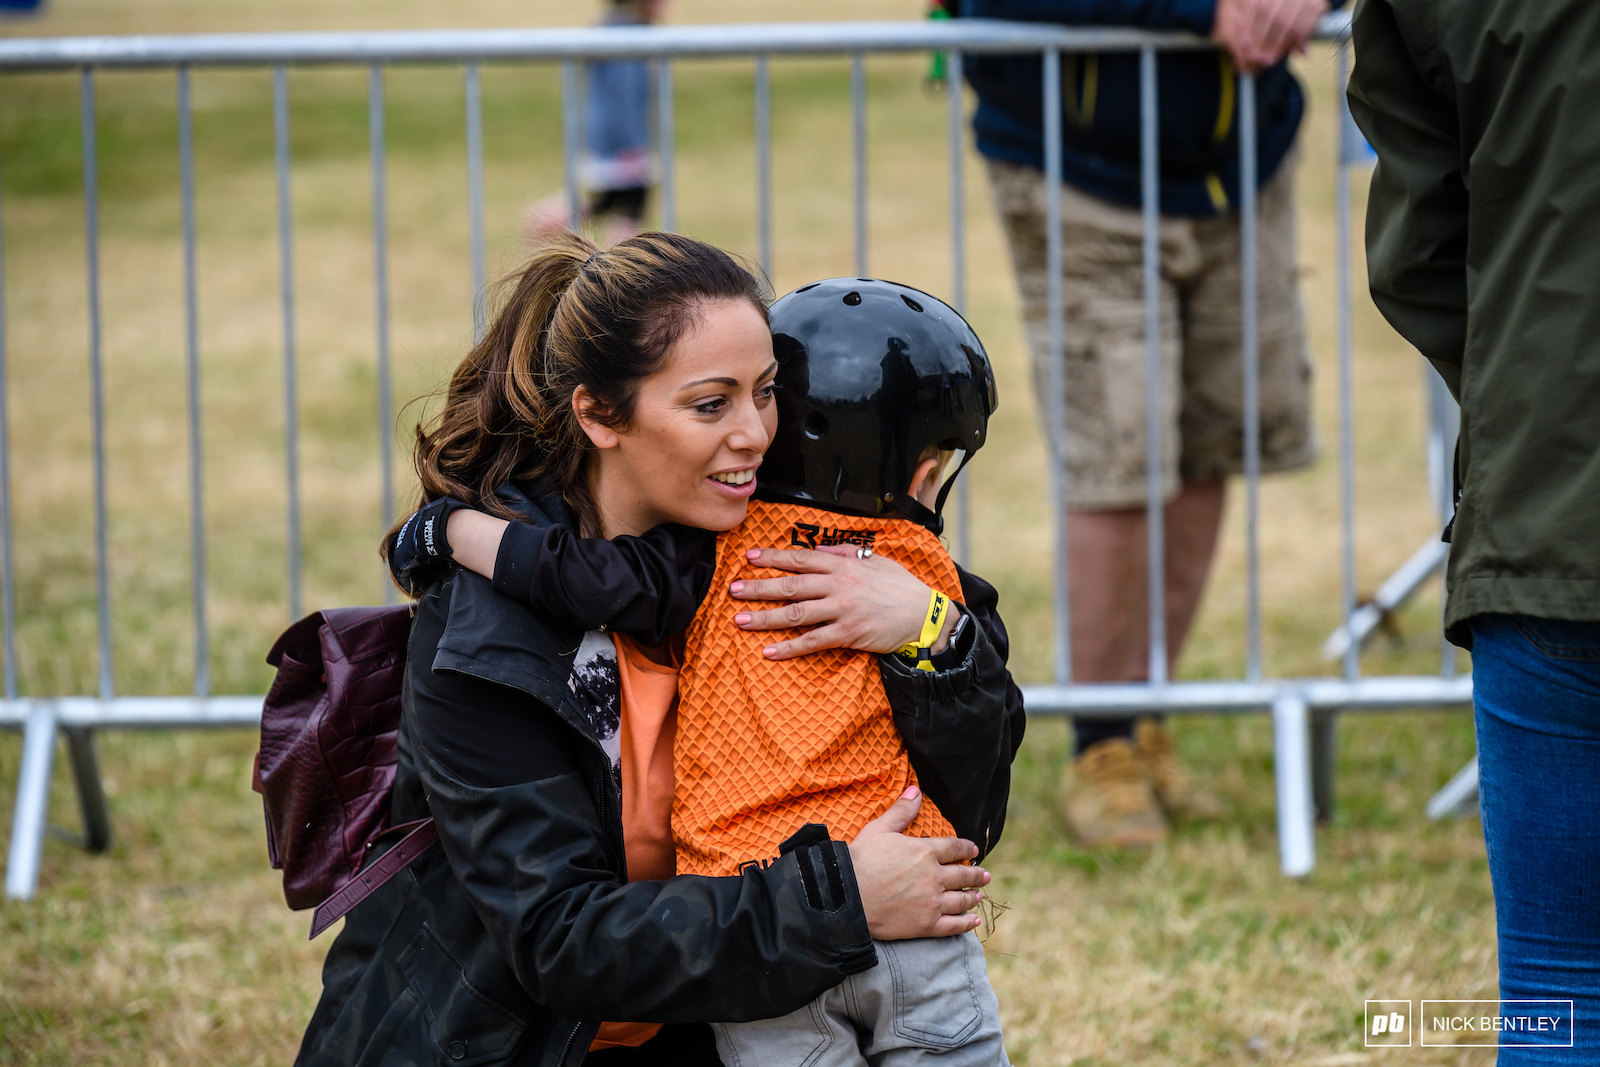 Hugs from Mum at the finish line